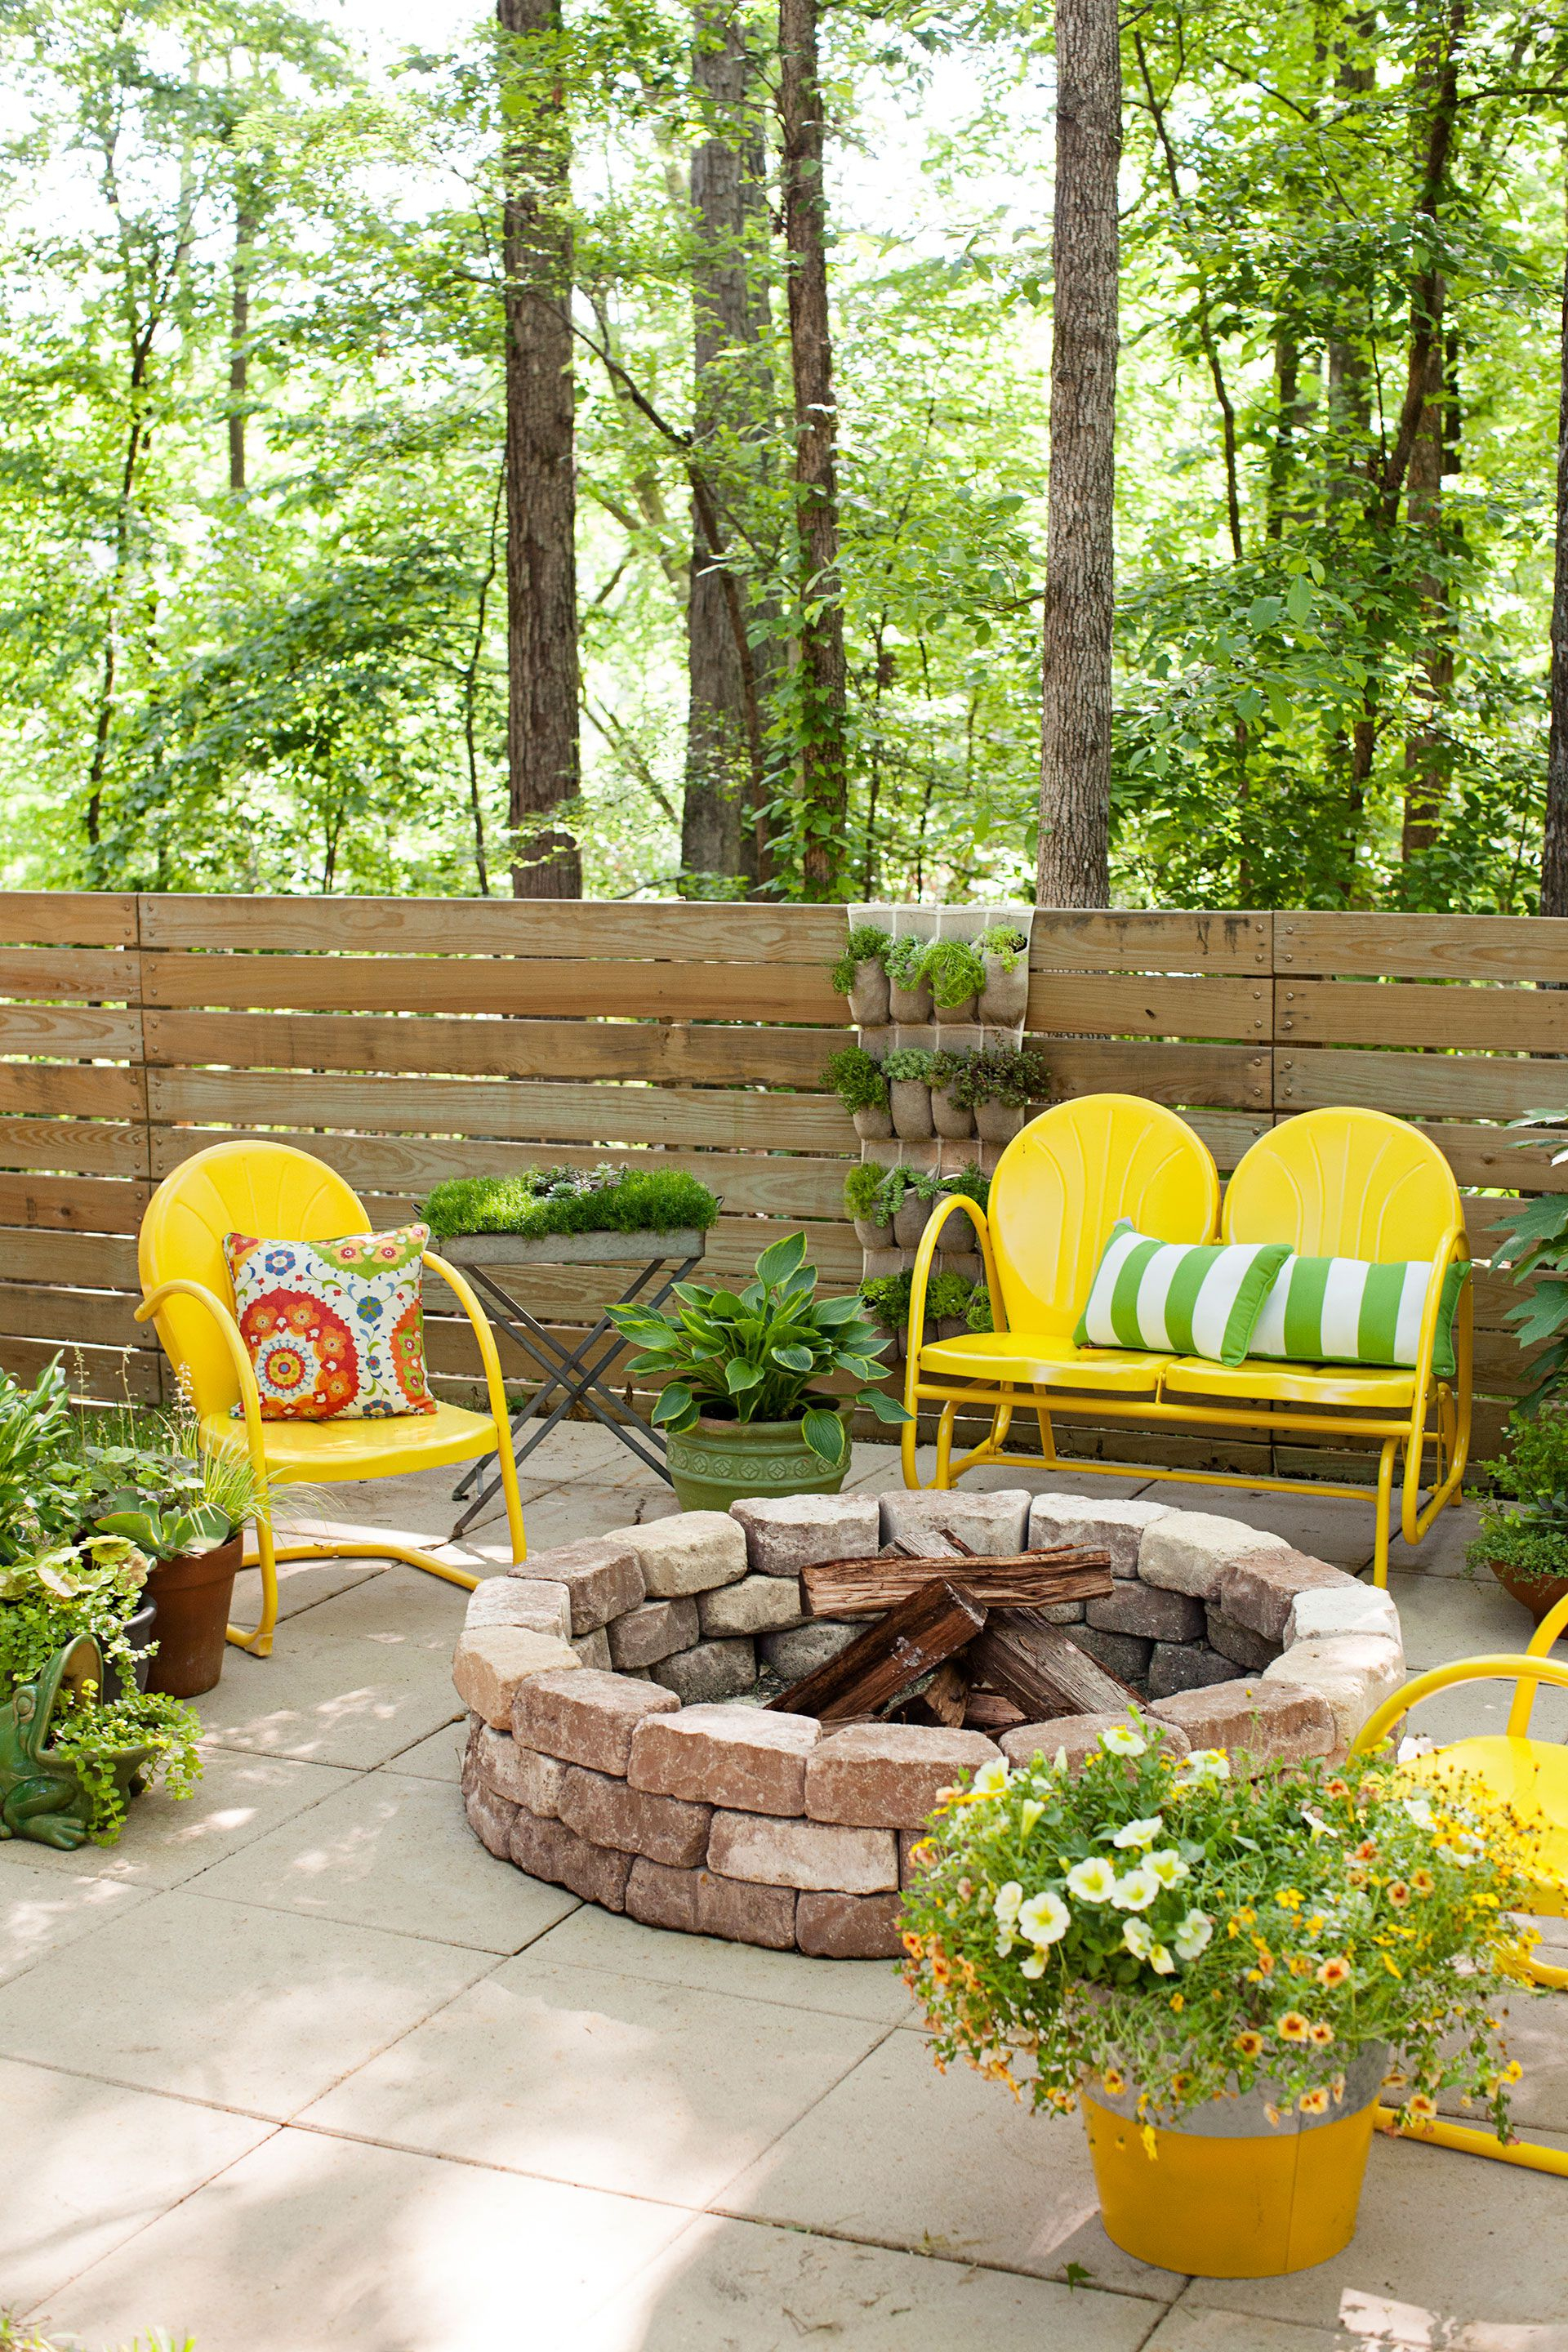 28 Backyard Decorating Ideas Easy Gardening Tips And Diy Projects inside Decorate Backyard